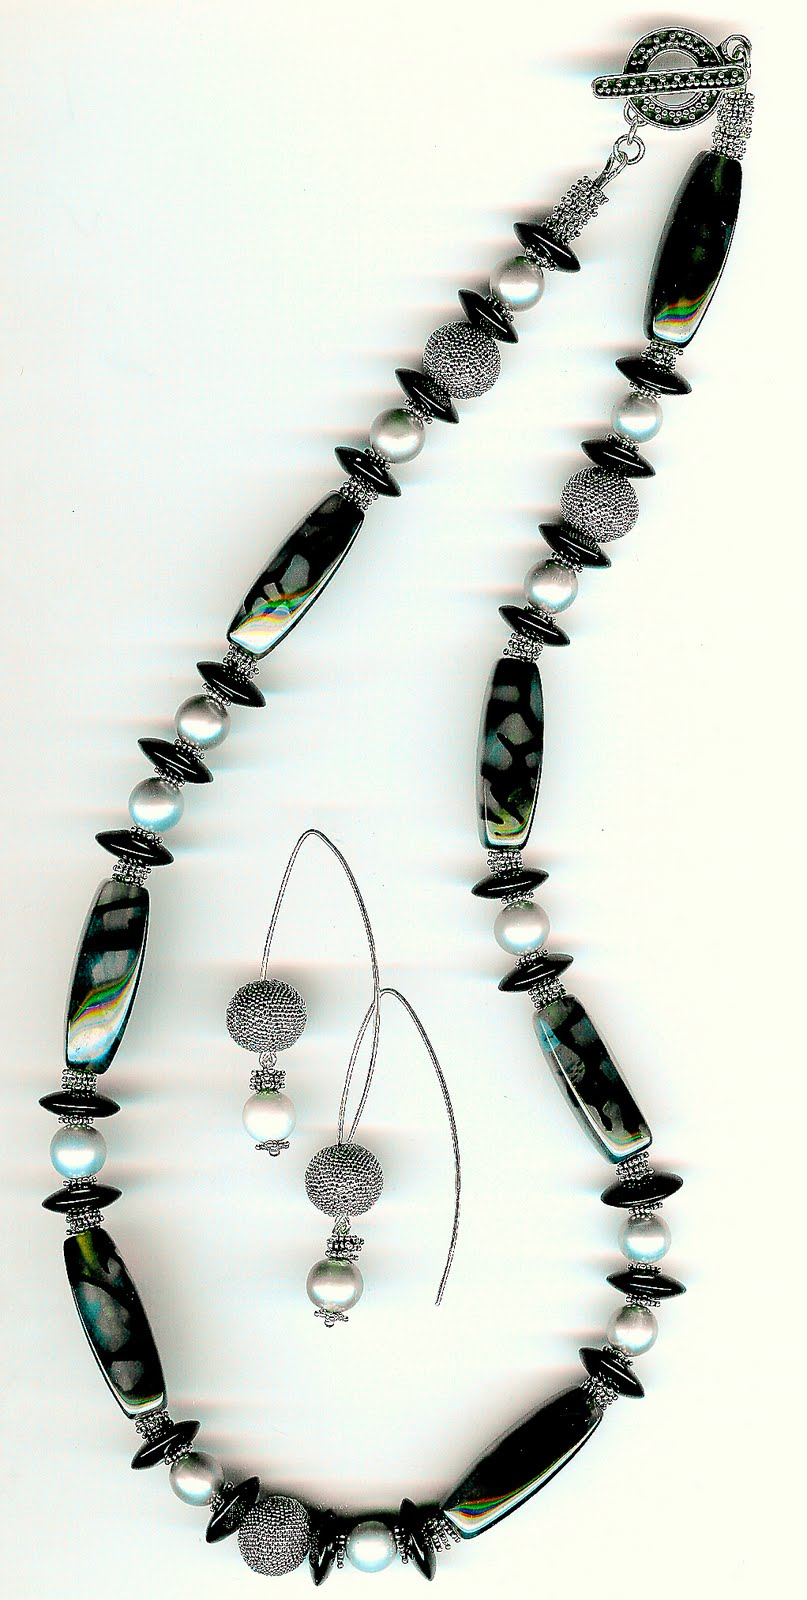 180. Zebra Agate, Black Onyx, Grey Akoya Pearls with Bali Sterling Silver + Earrings